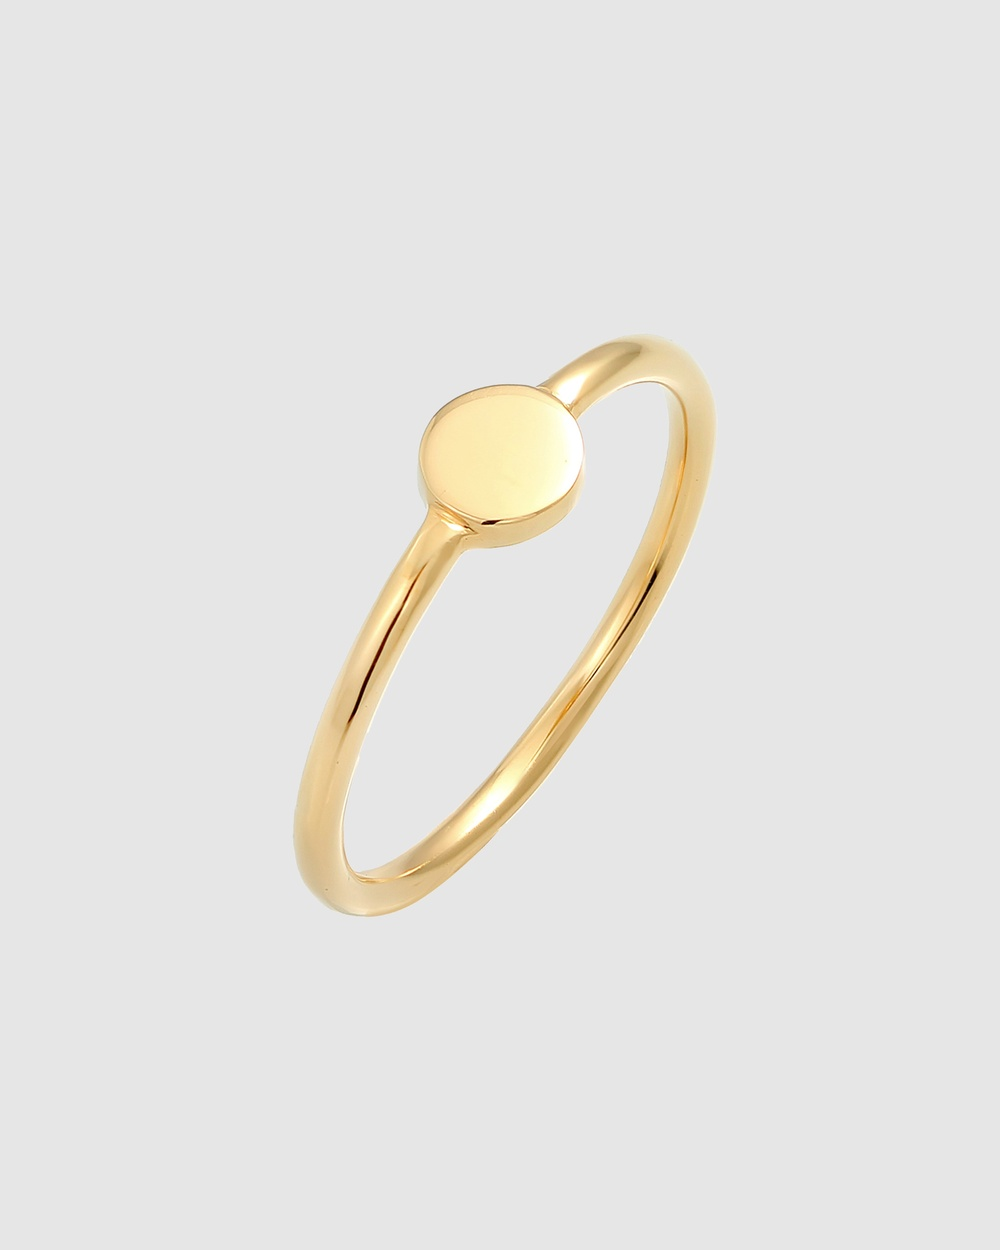 Elli Jewelry Ring Stacking Trend Platelet Basic in 925 Sterling Silver Gold Plated Jewellery Gold